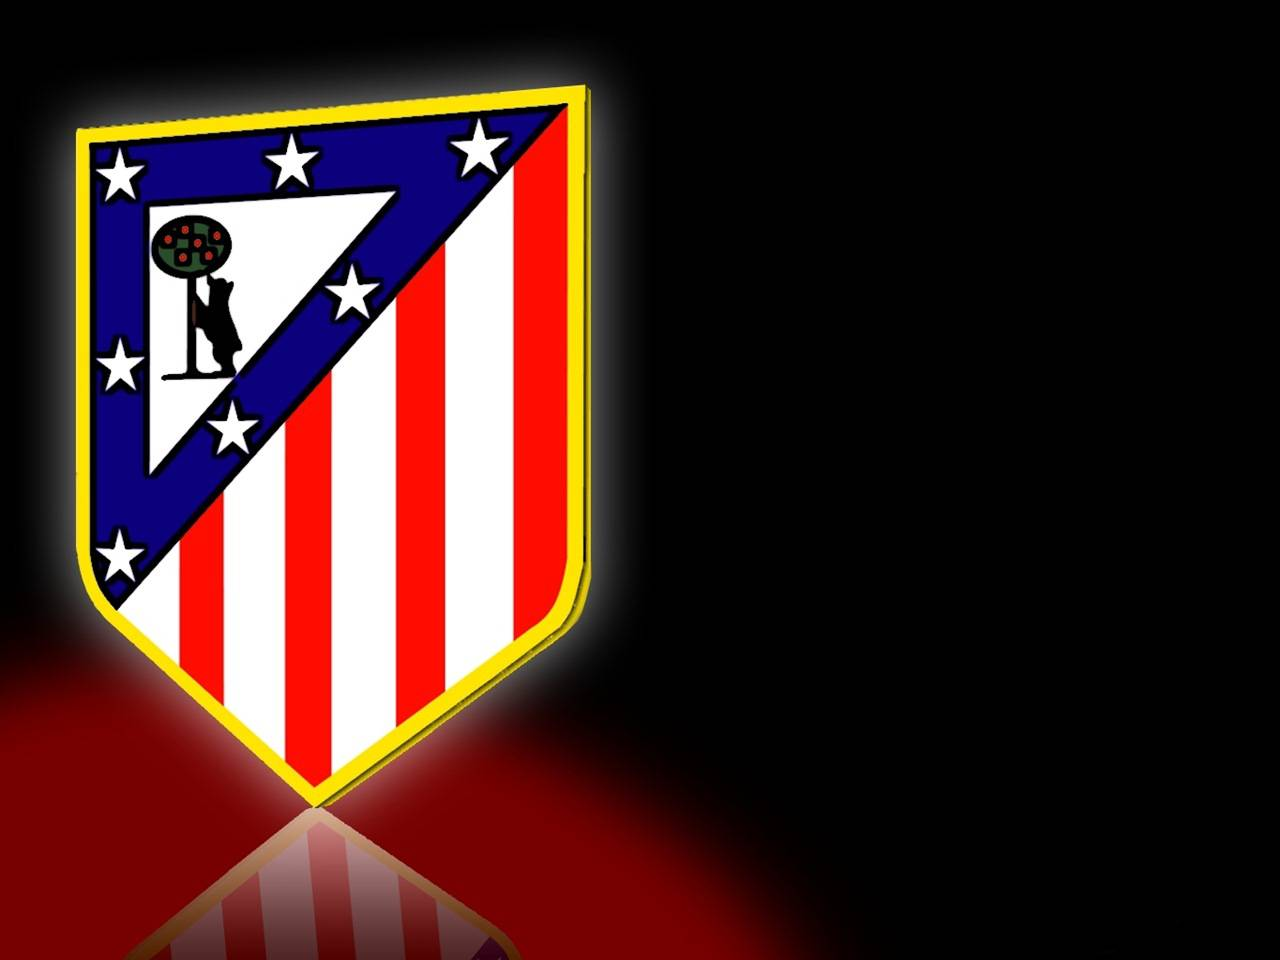 Atl233tico Madrid HD Wallpapers   Football HD Wallpapers 1280x960